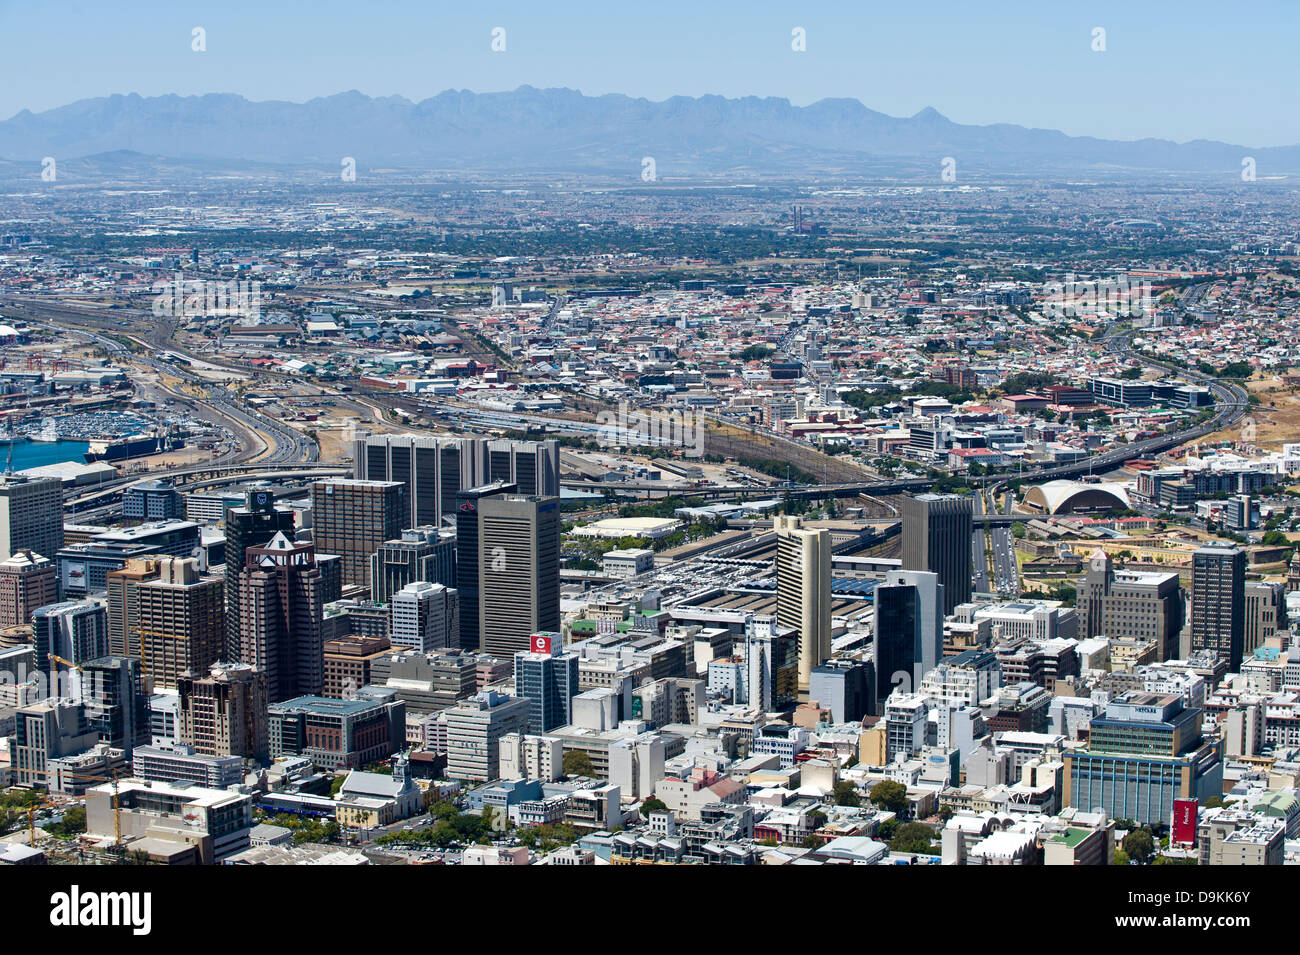 Skyline Cape Town, South Africa - Stock Image